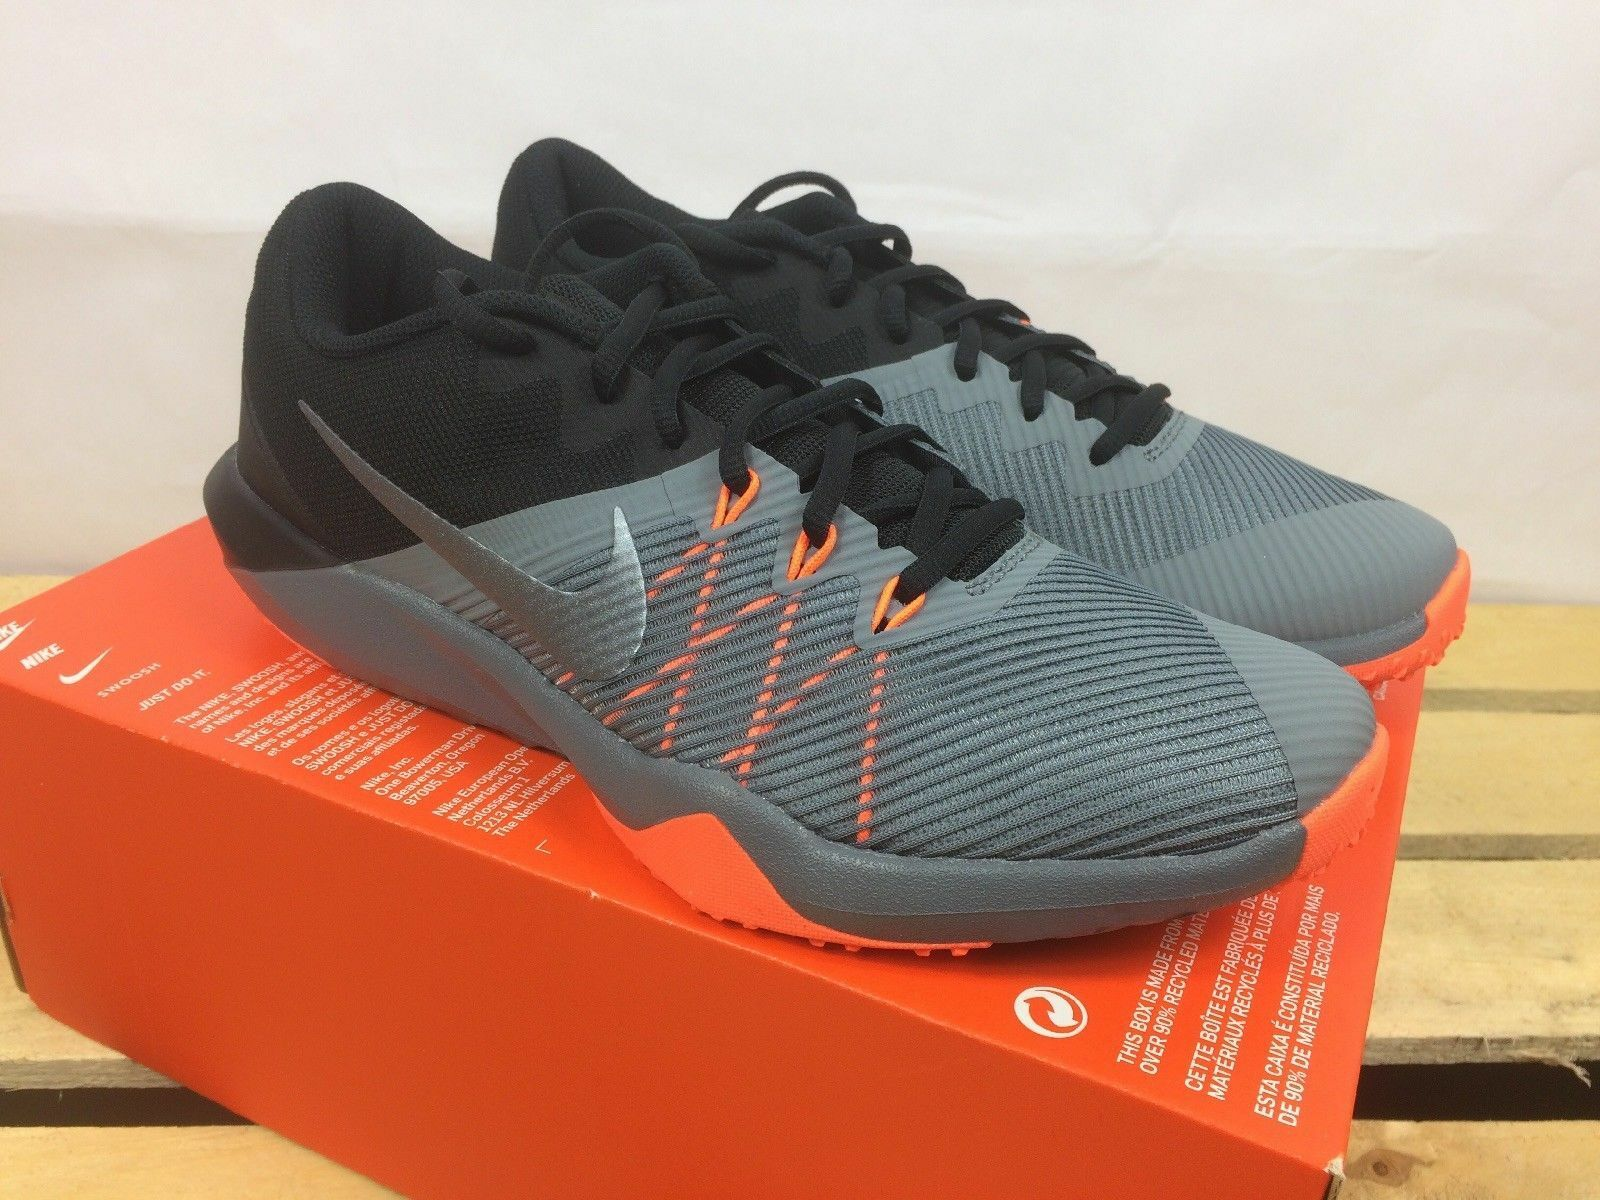 Nike Retaliation TR Mens 9.5 Cross Training shoes Cool Grey orange  917707-003